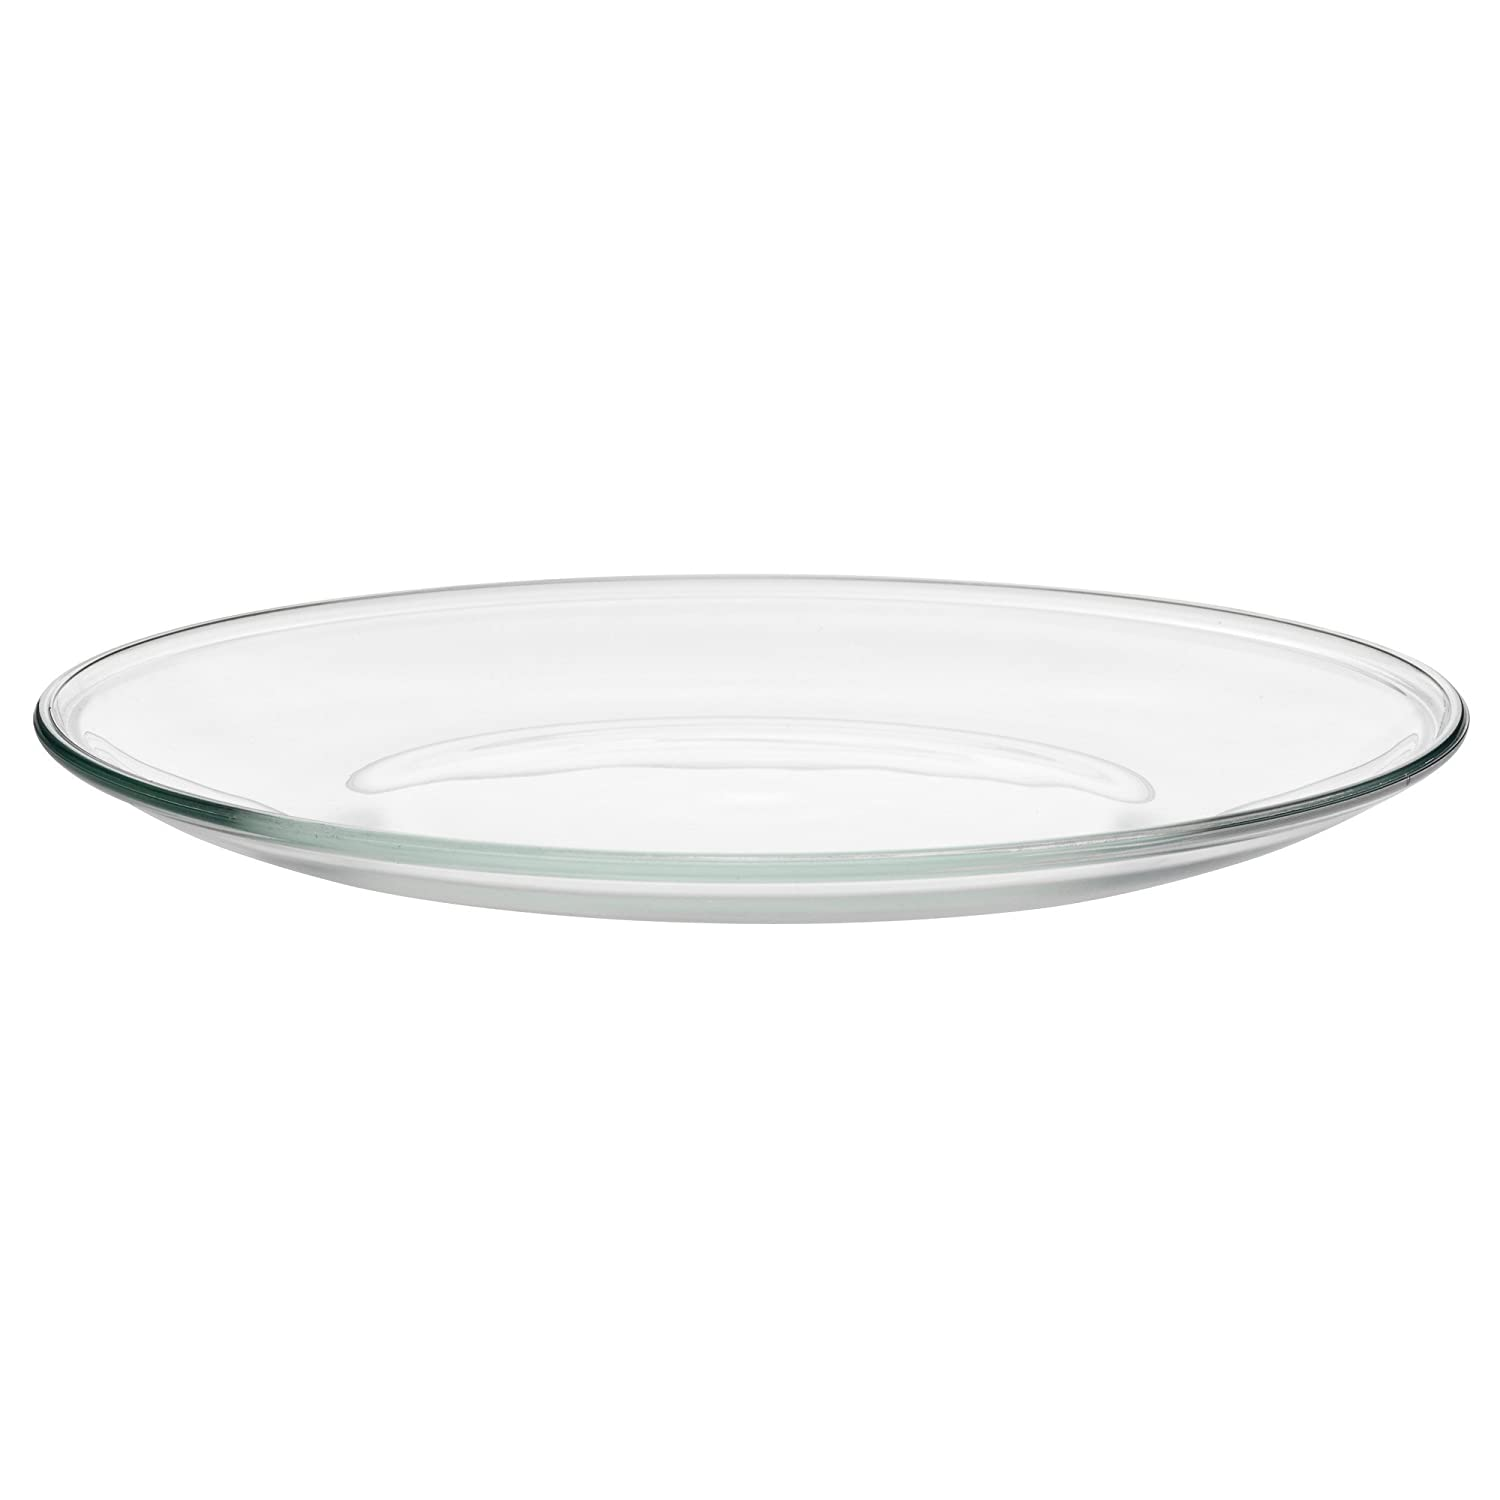 9 inch glass plates ikea oppen set of 4 accent plates